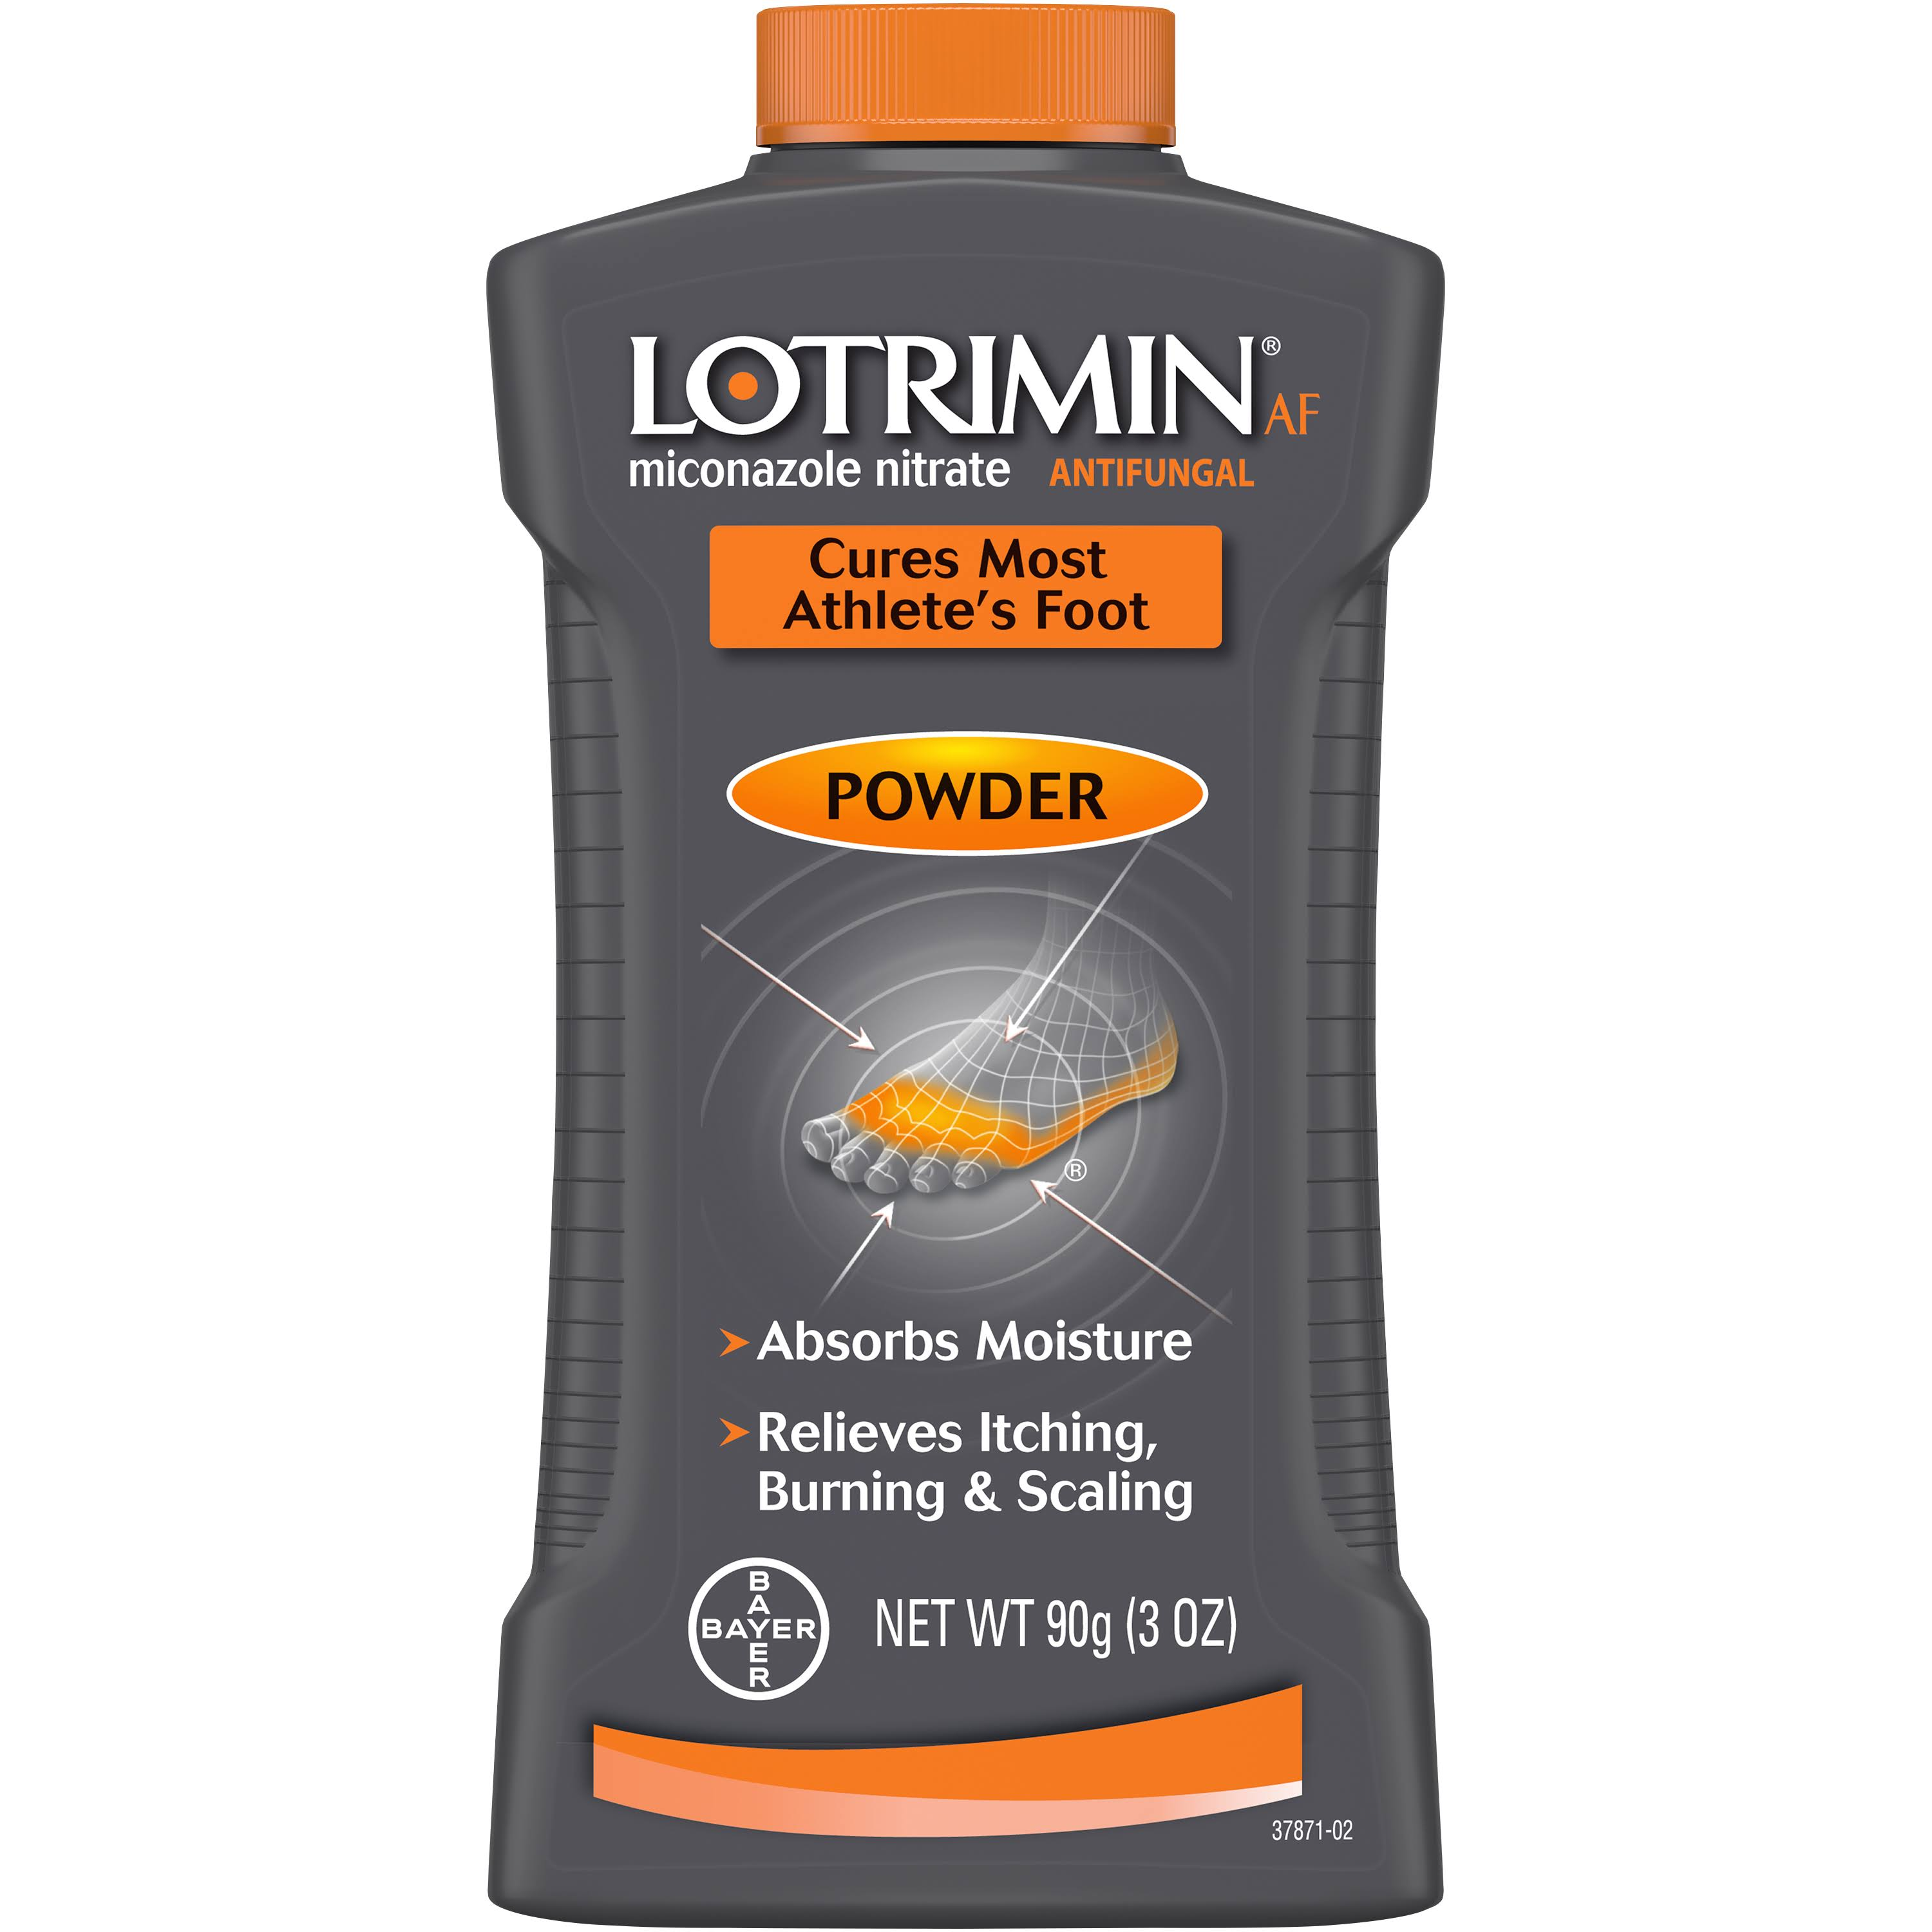 Lotrimin Antifungal Powder for Athlete's Foot - 3oz